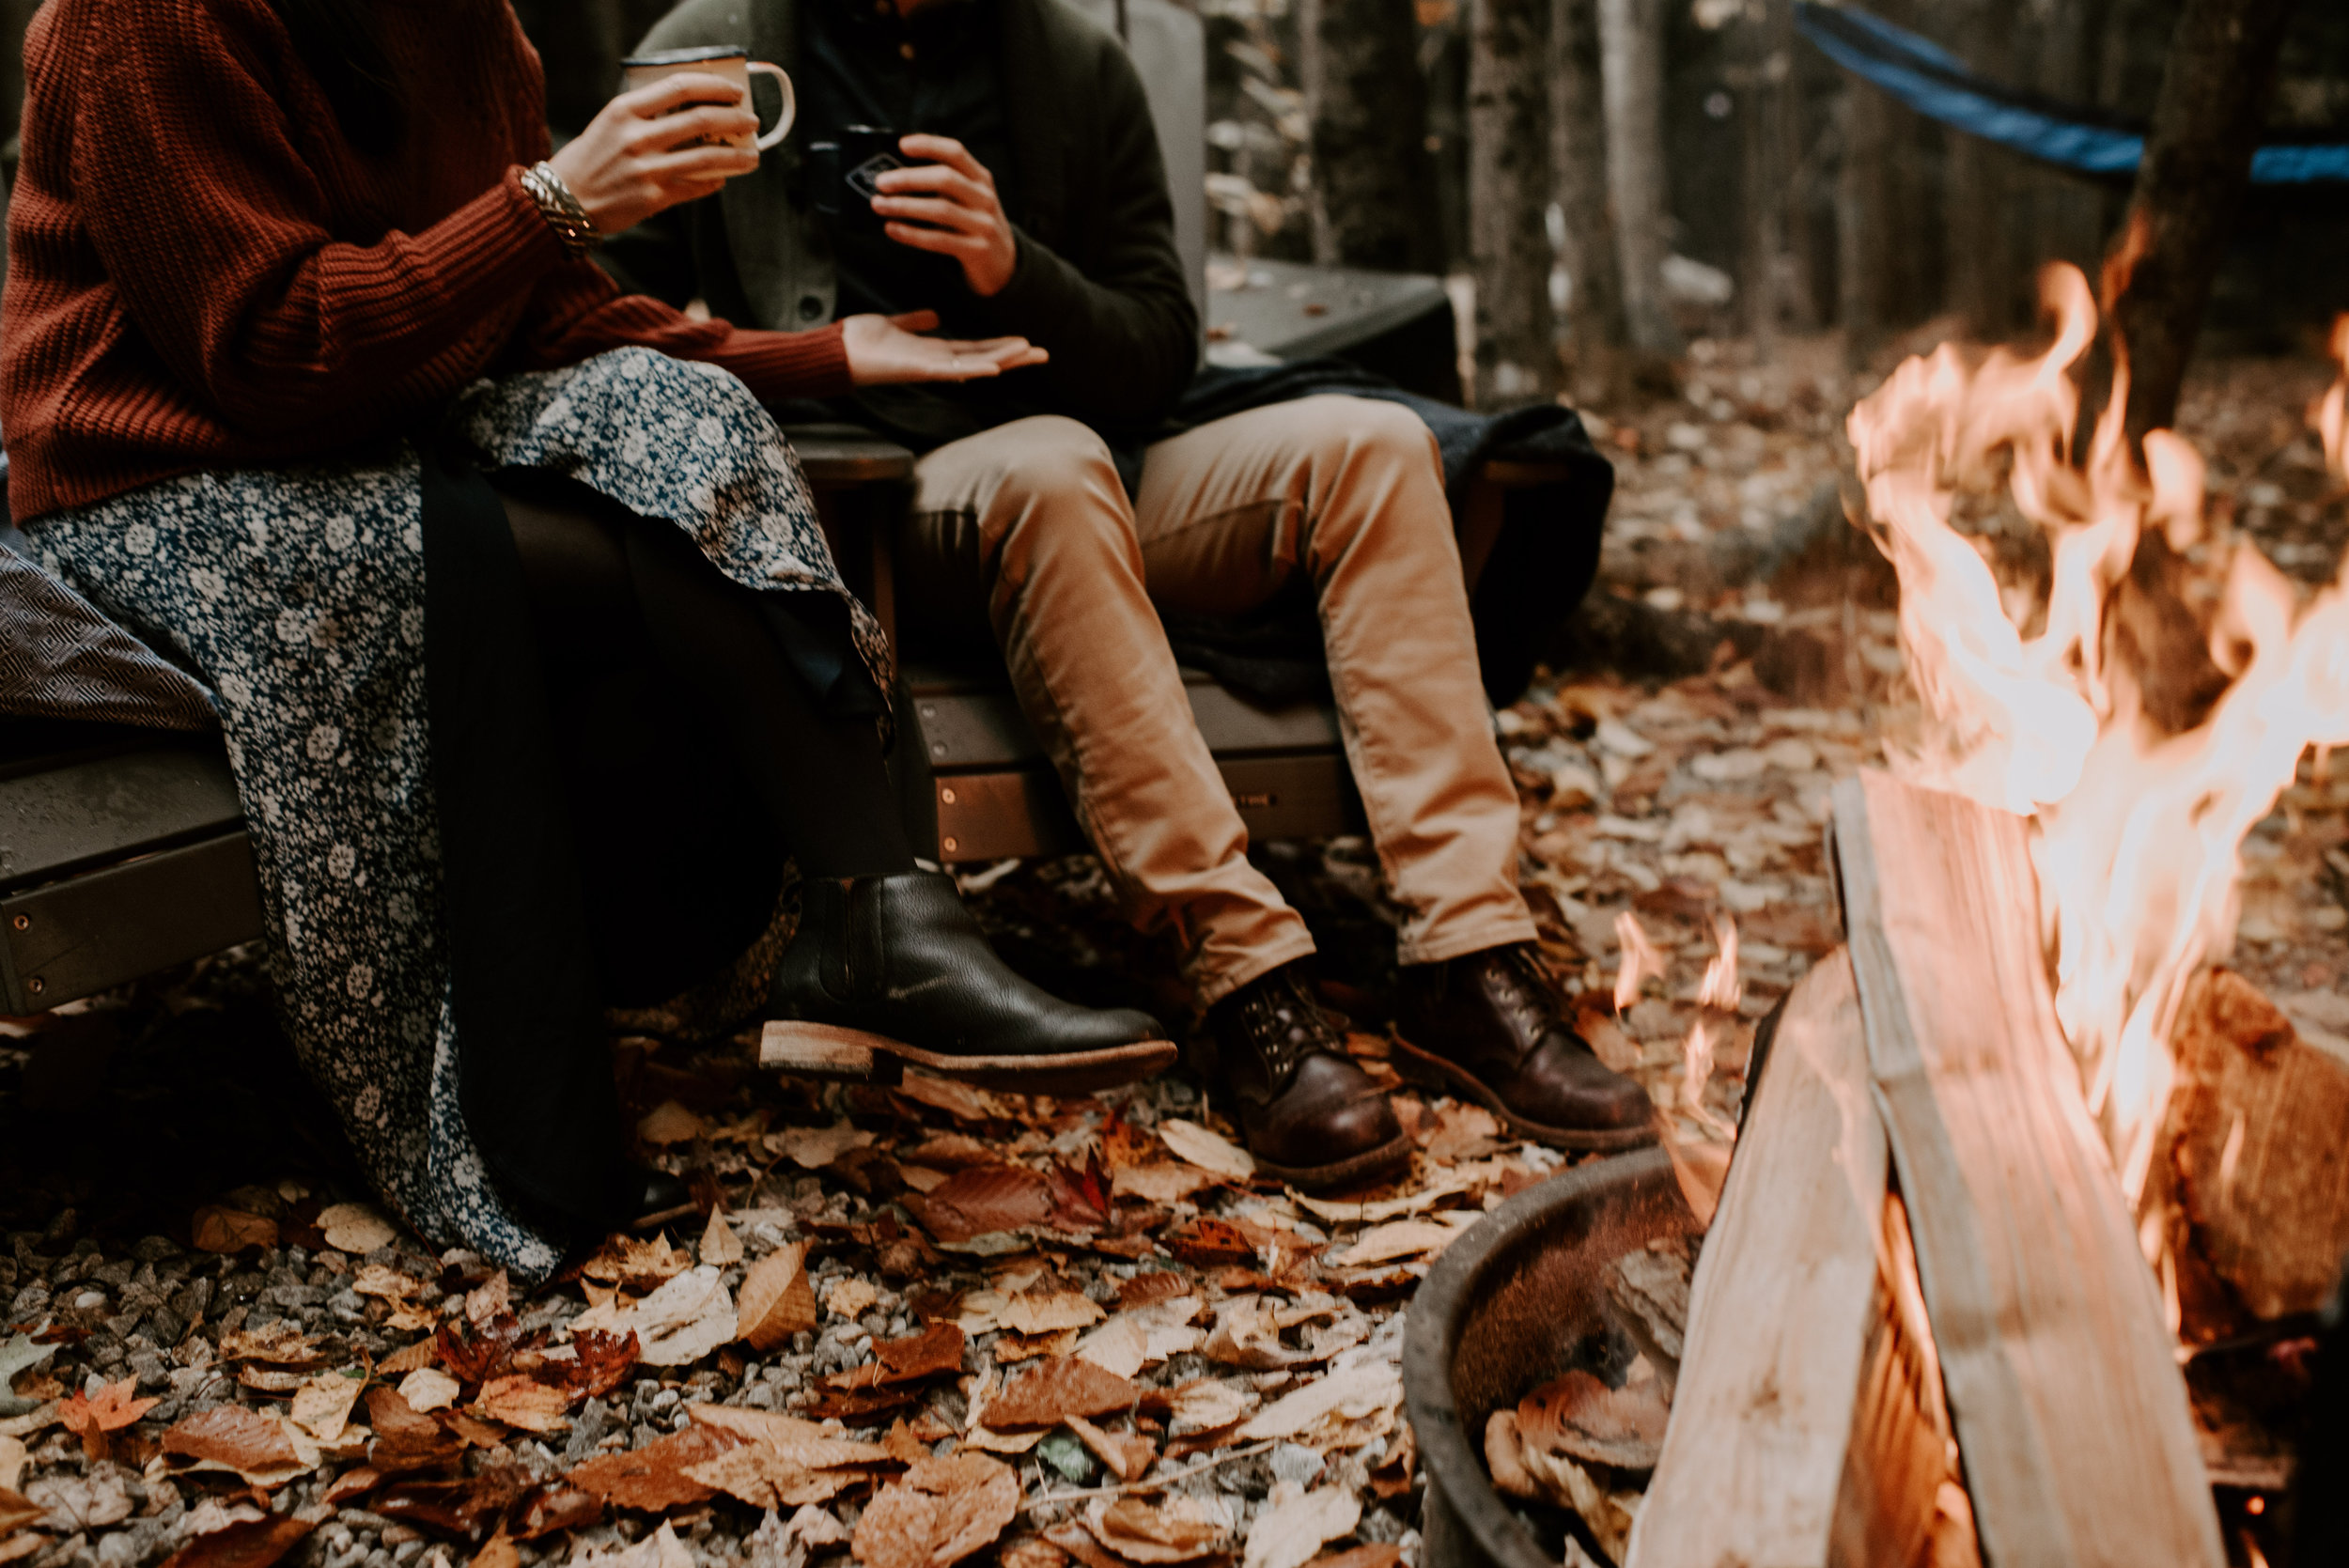 Lisa And Ryan's Camping Engagement Session At The Getaway Houses   New Hampshire Wedding Photographer   Madeline Rose Photography Co.